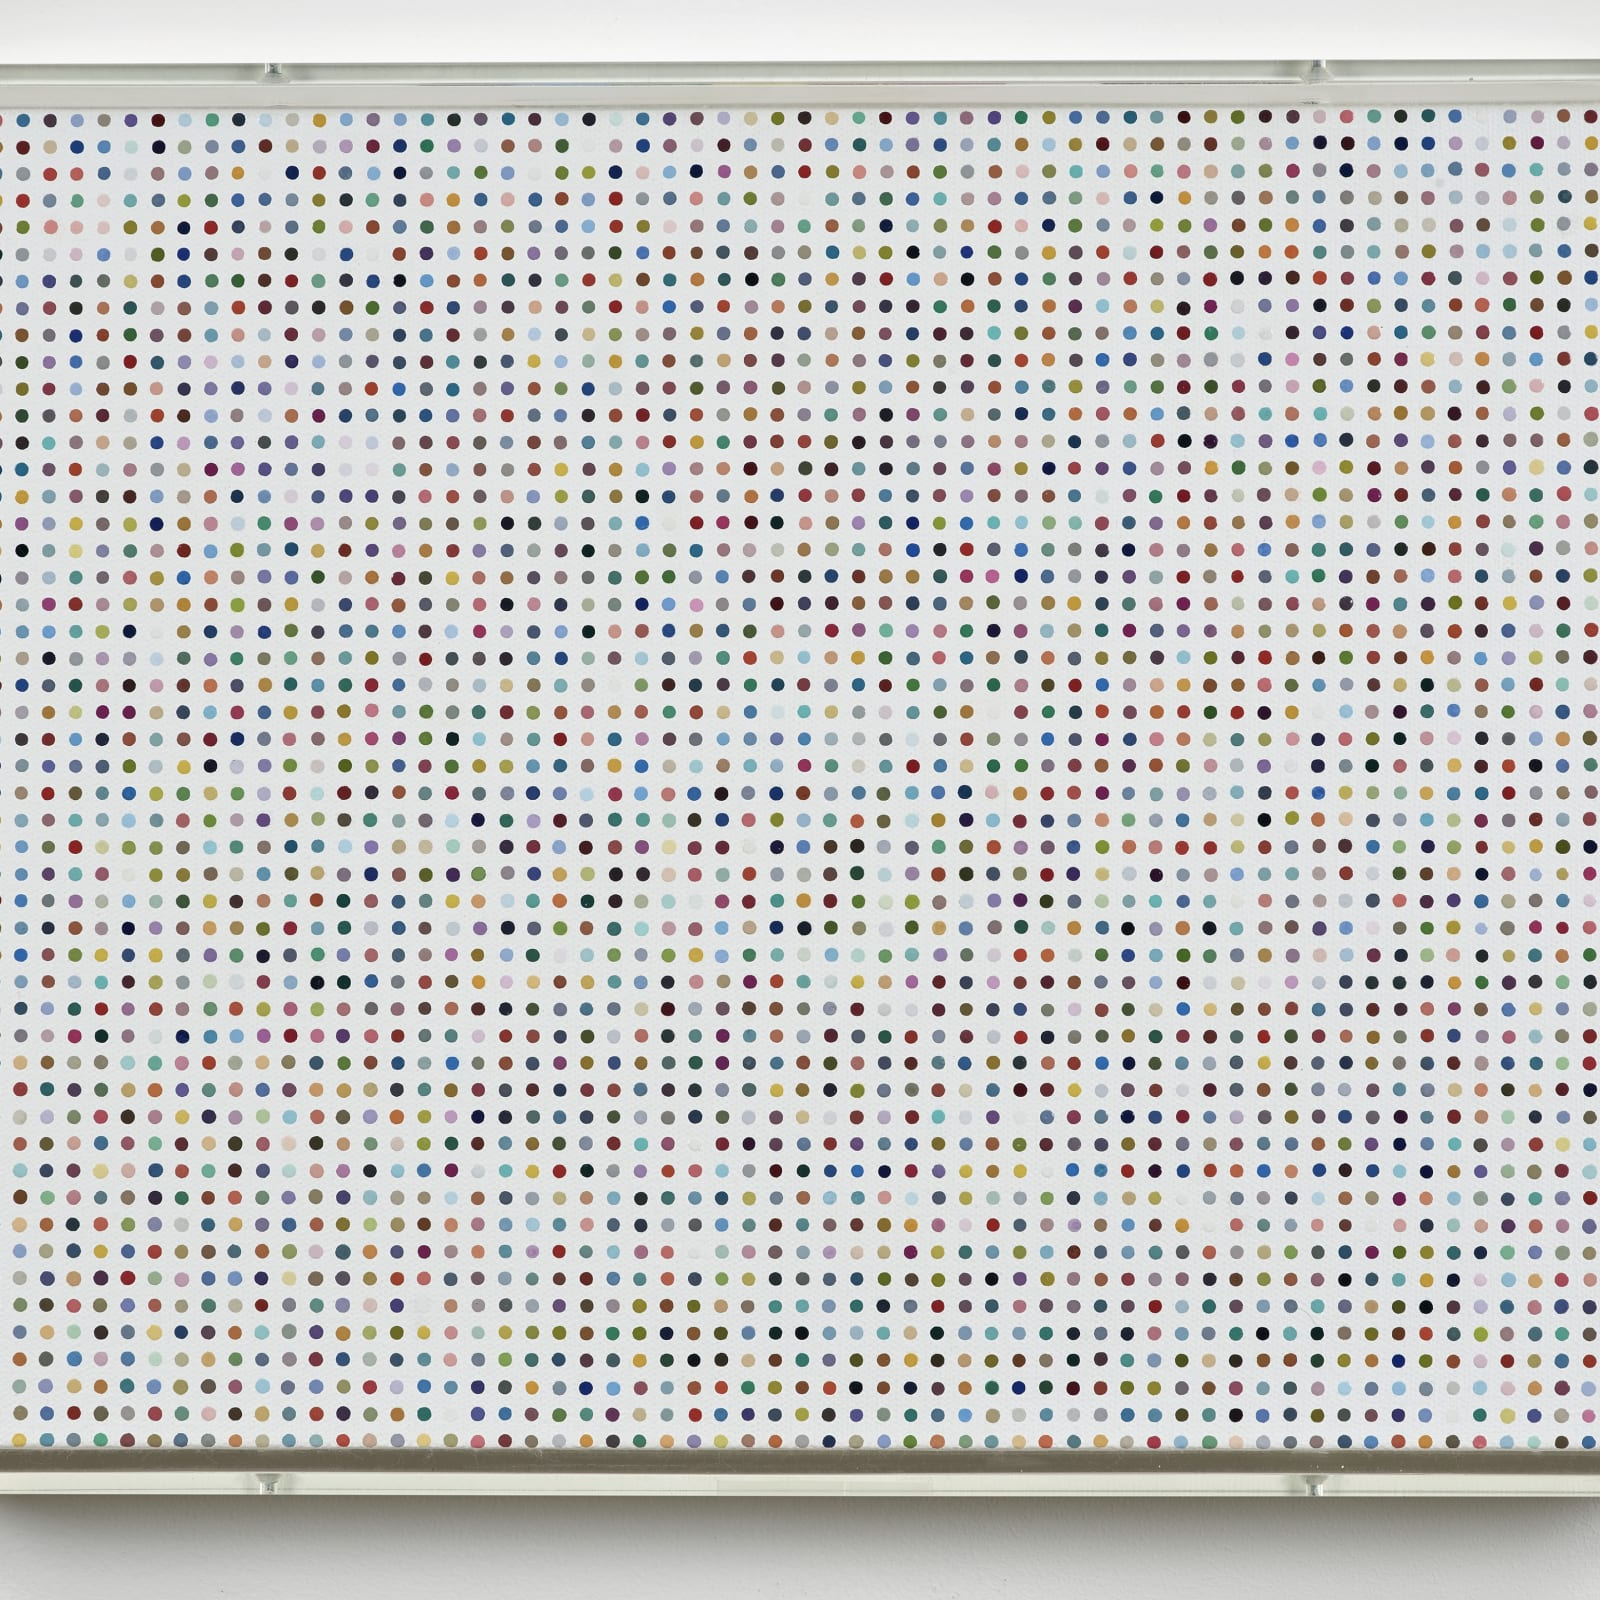 Damien Hirst  b.1965  Catechol, 2009  HIRST 2009.0379  household gloss on canvas, 3mm spot  11 3/4 x 16 3/8 inches / 29.7 x 41.7 cm